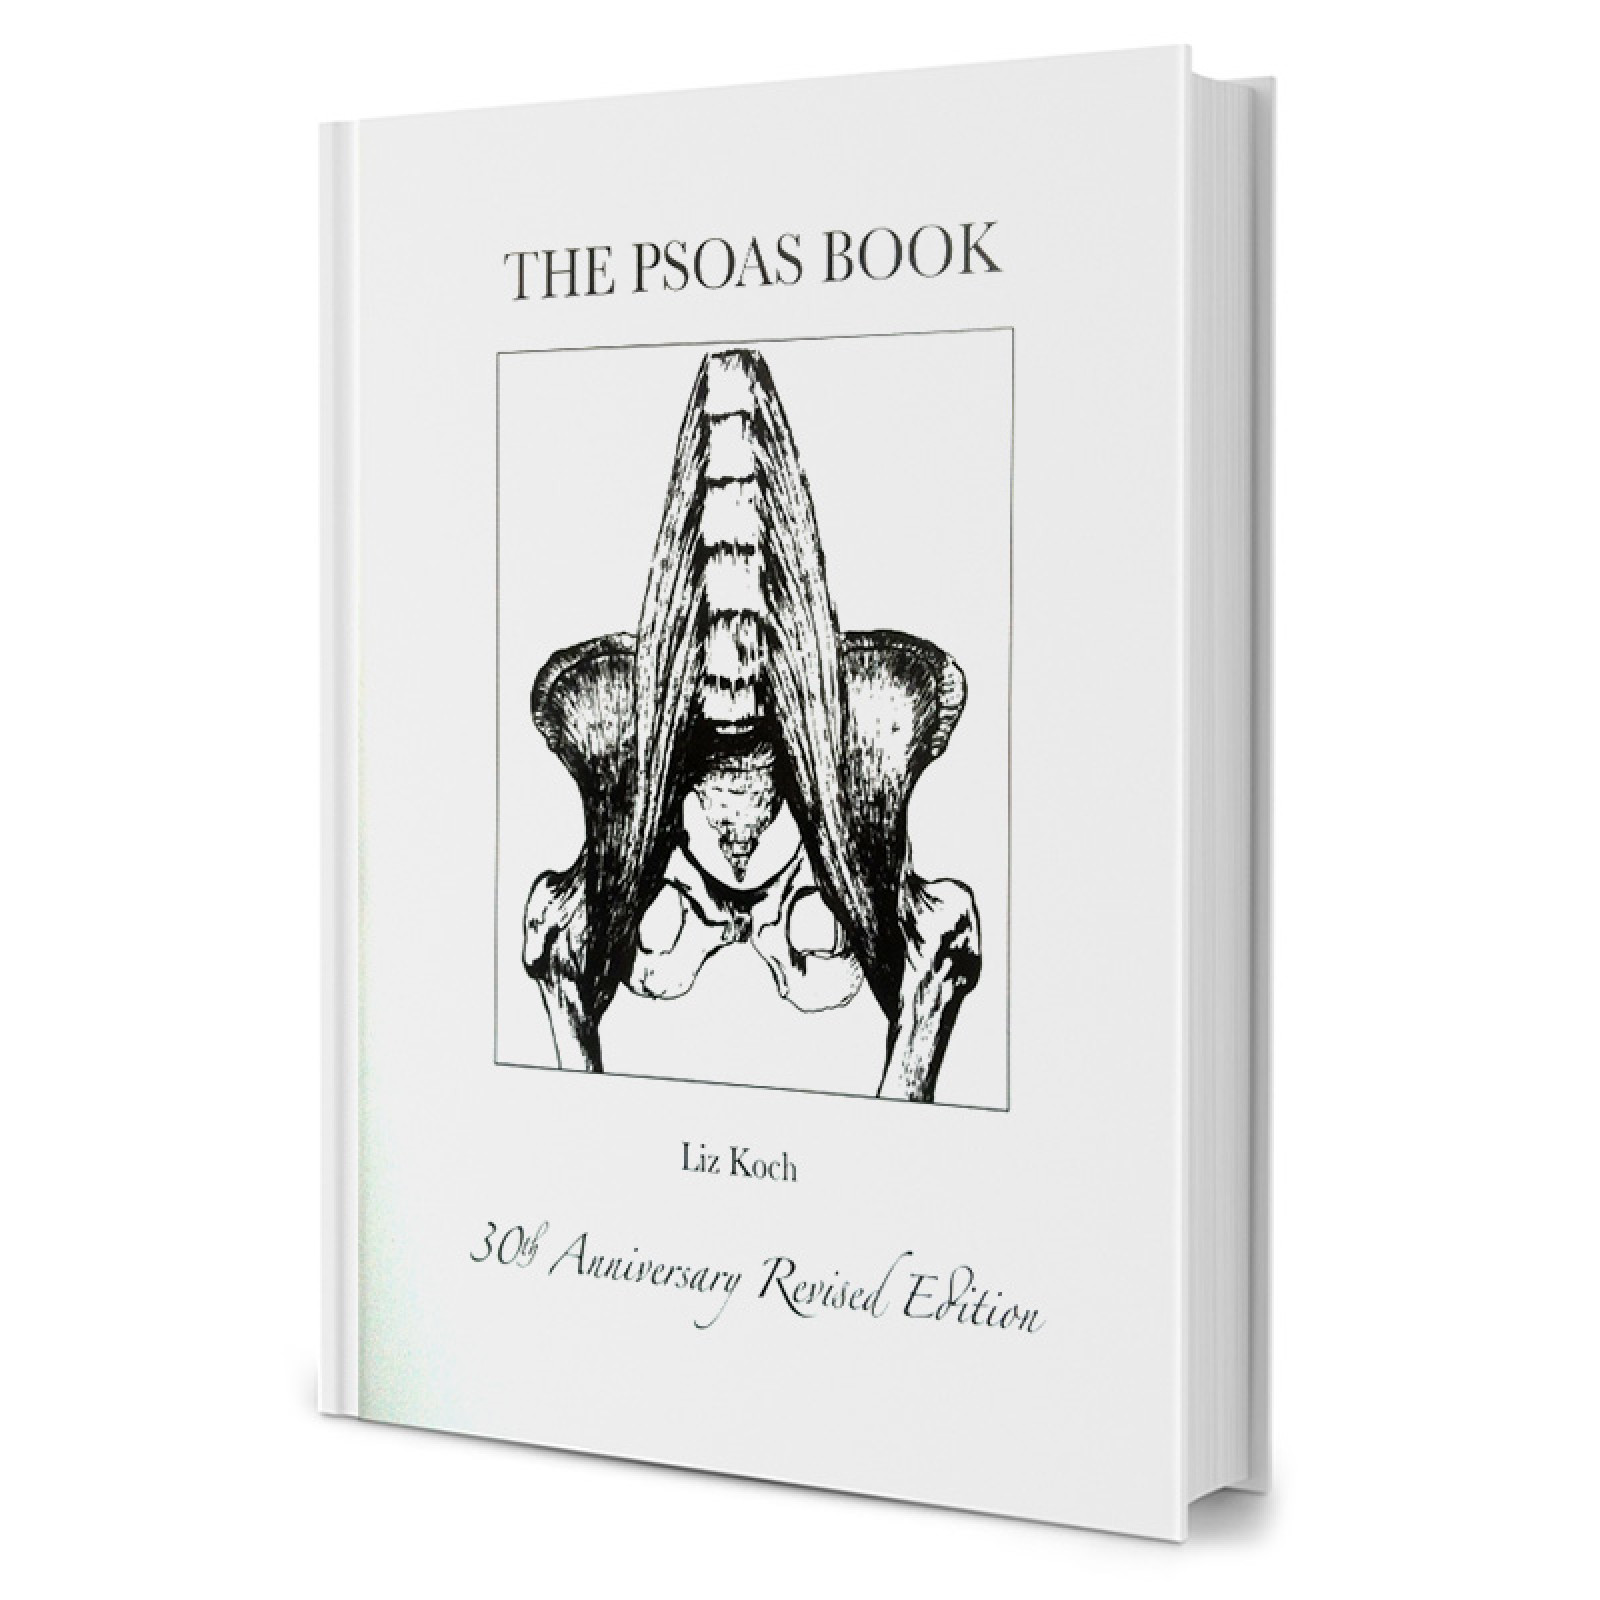 The Psoas Book